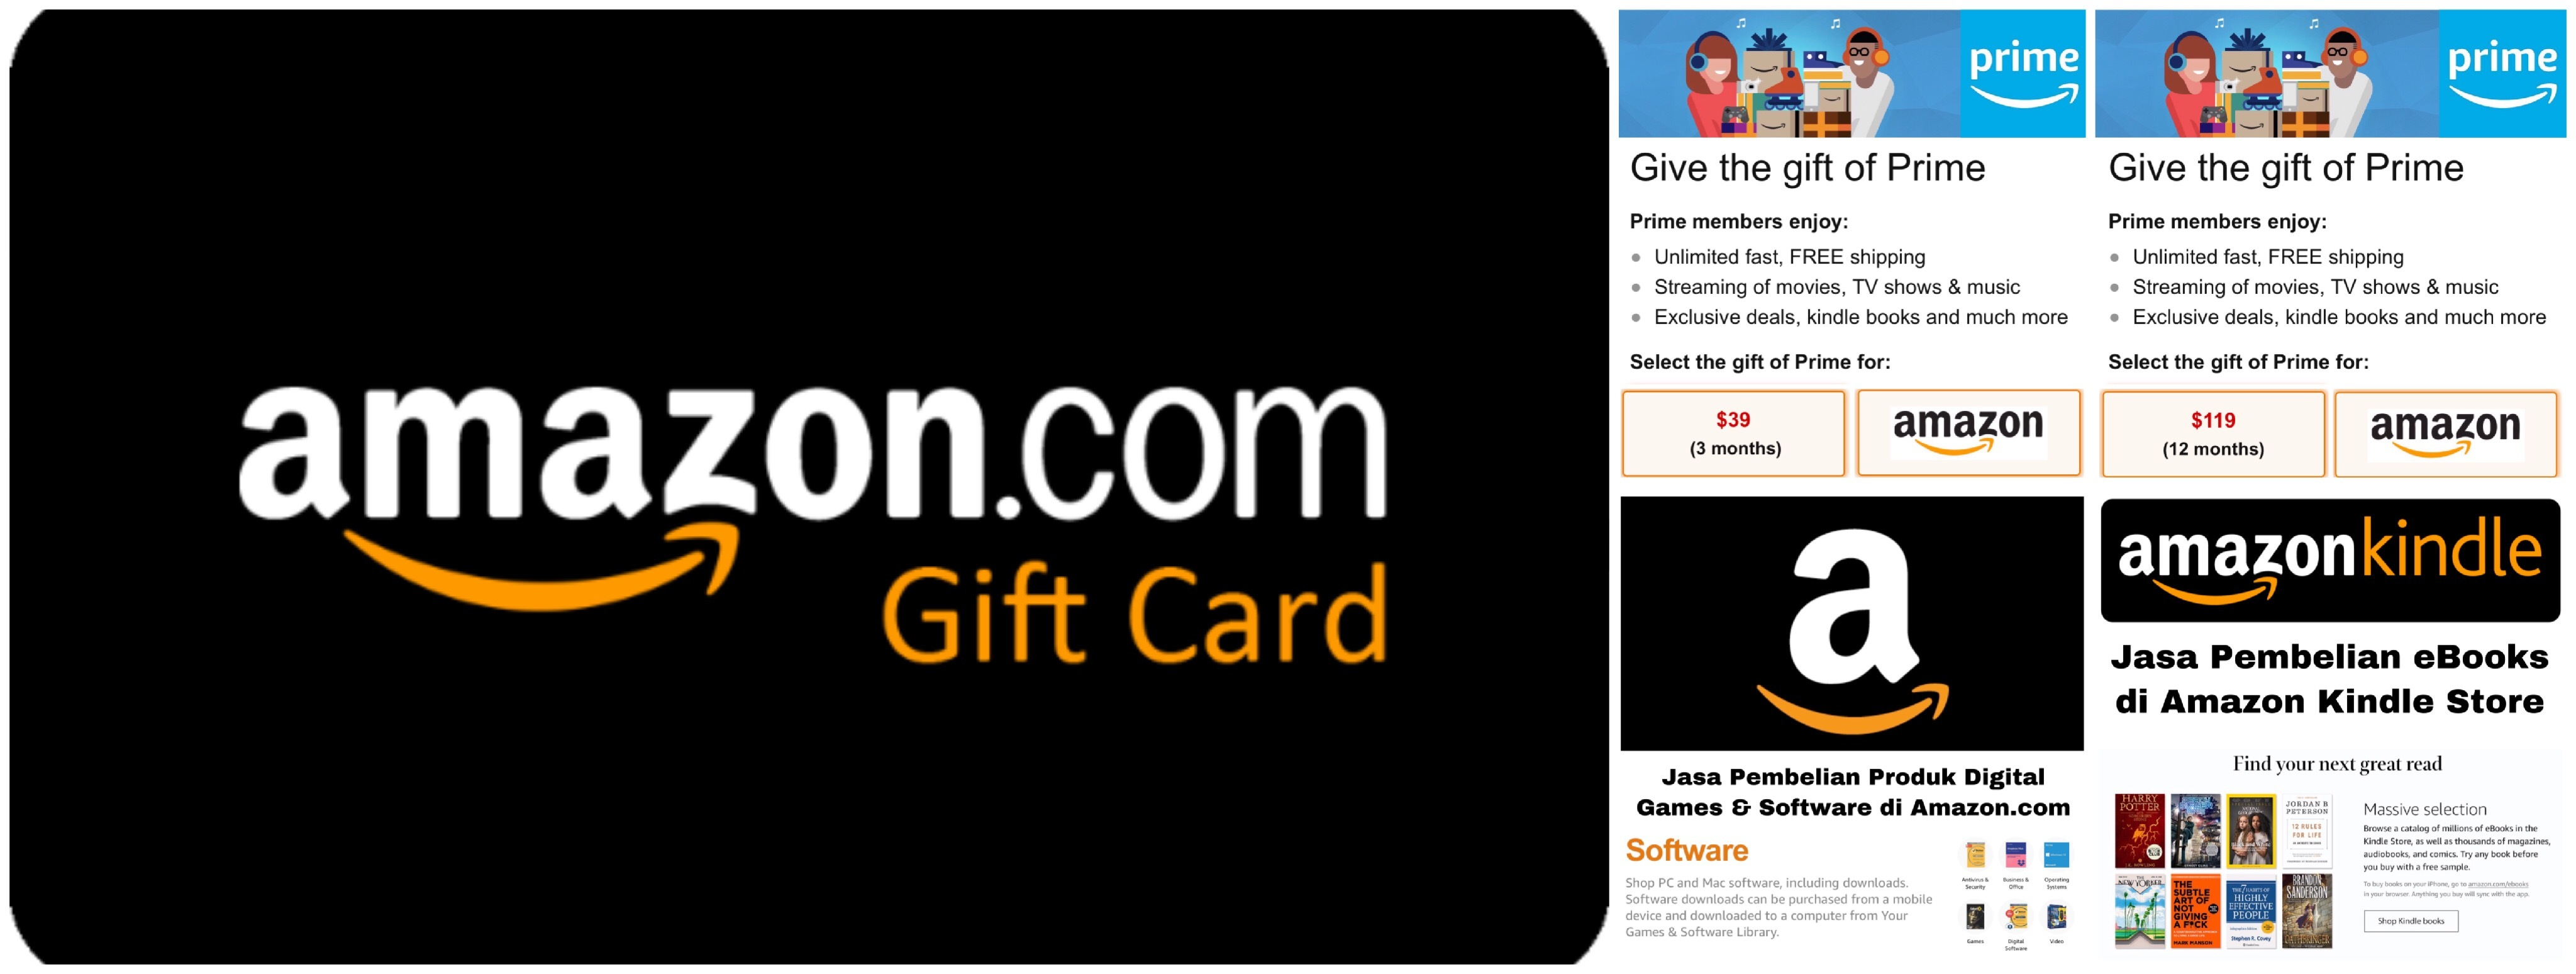 Amazon Gift Card US $5 $10 $15 $20 $25 $50 $100, Amazon Prime, Jasa Belanja Amazon